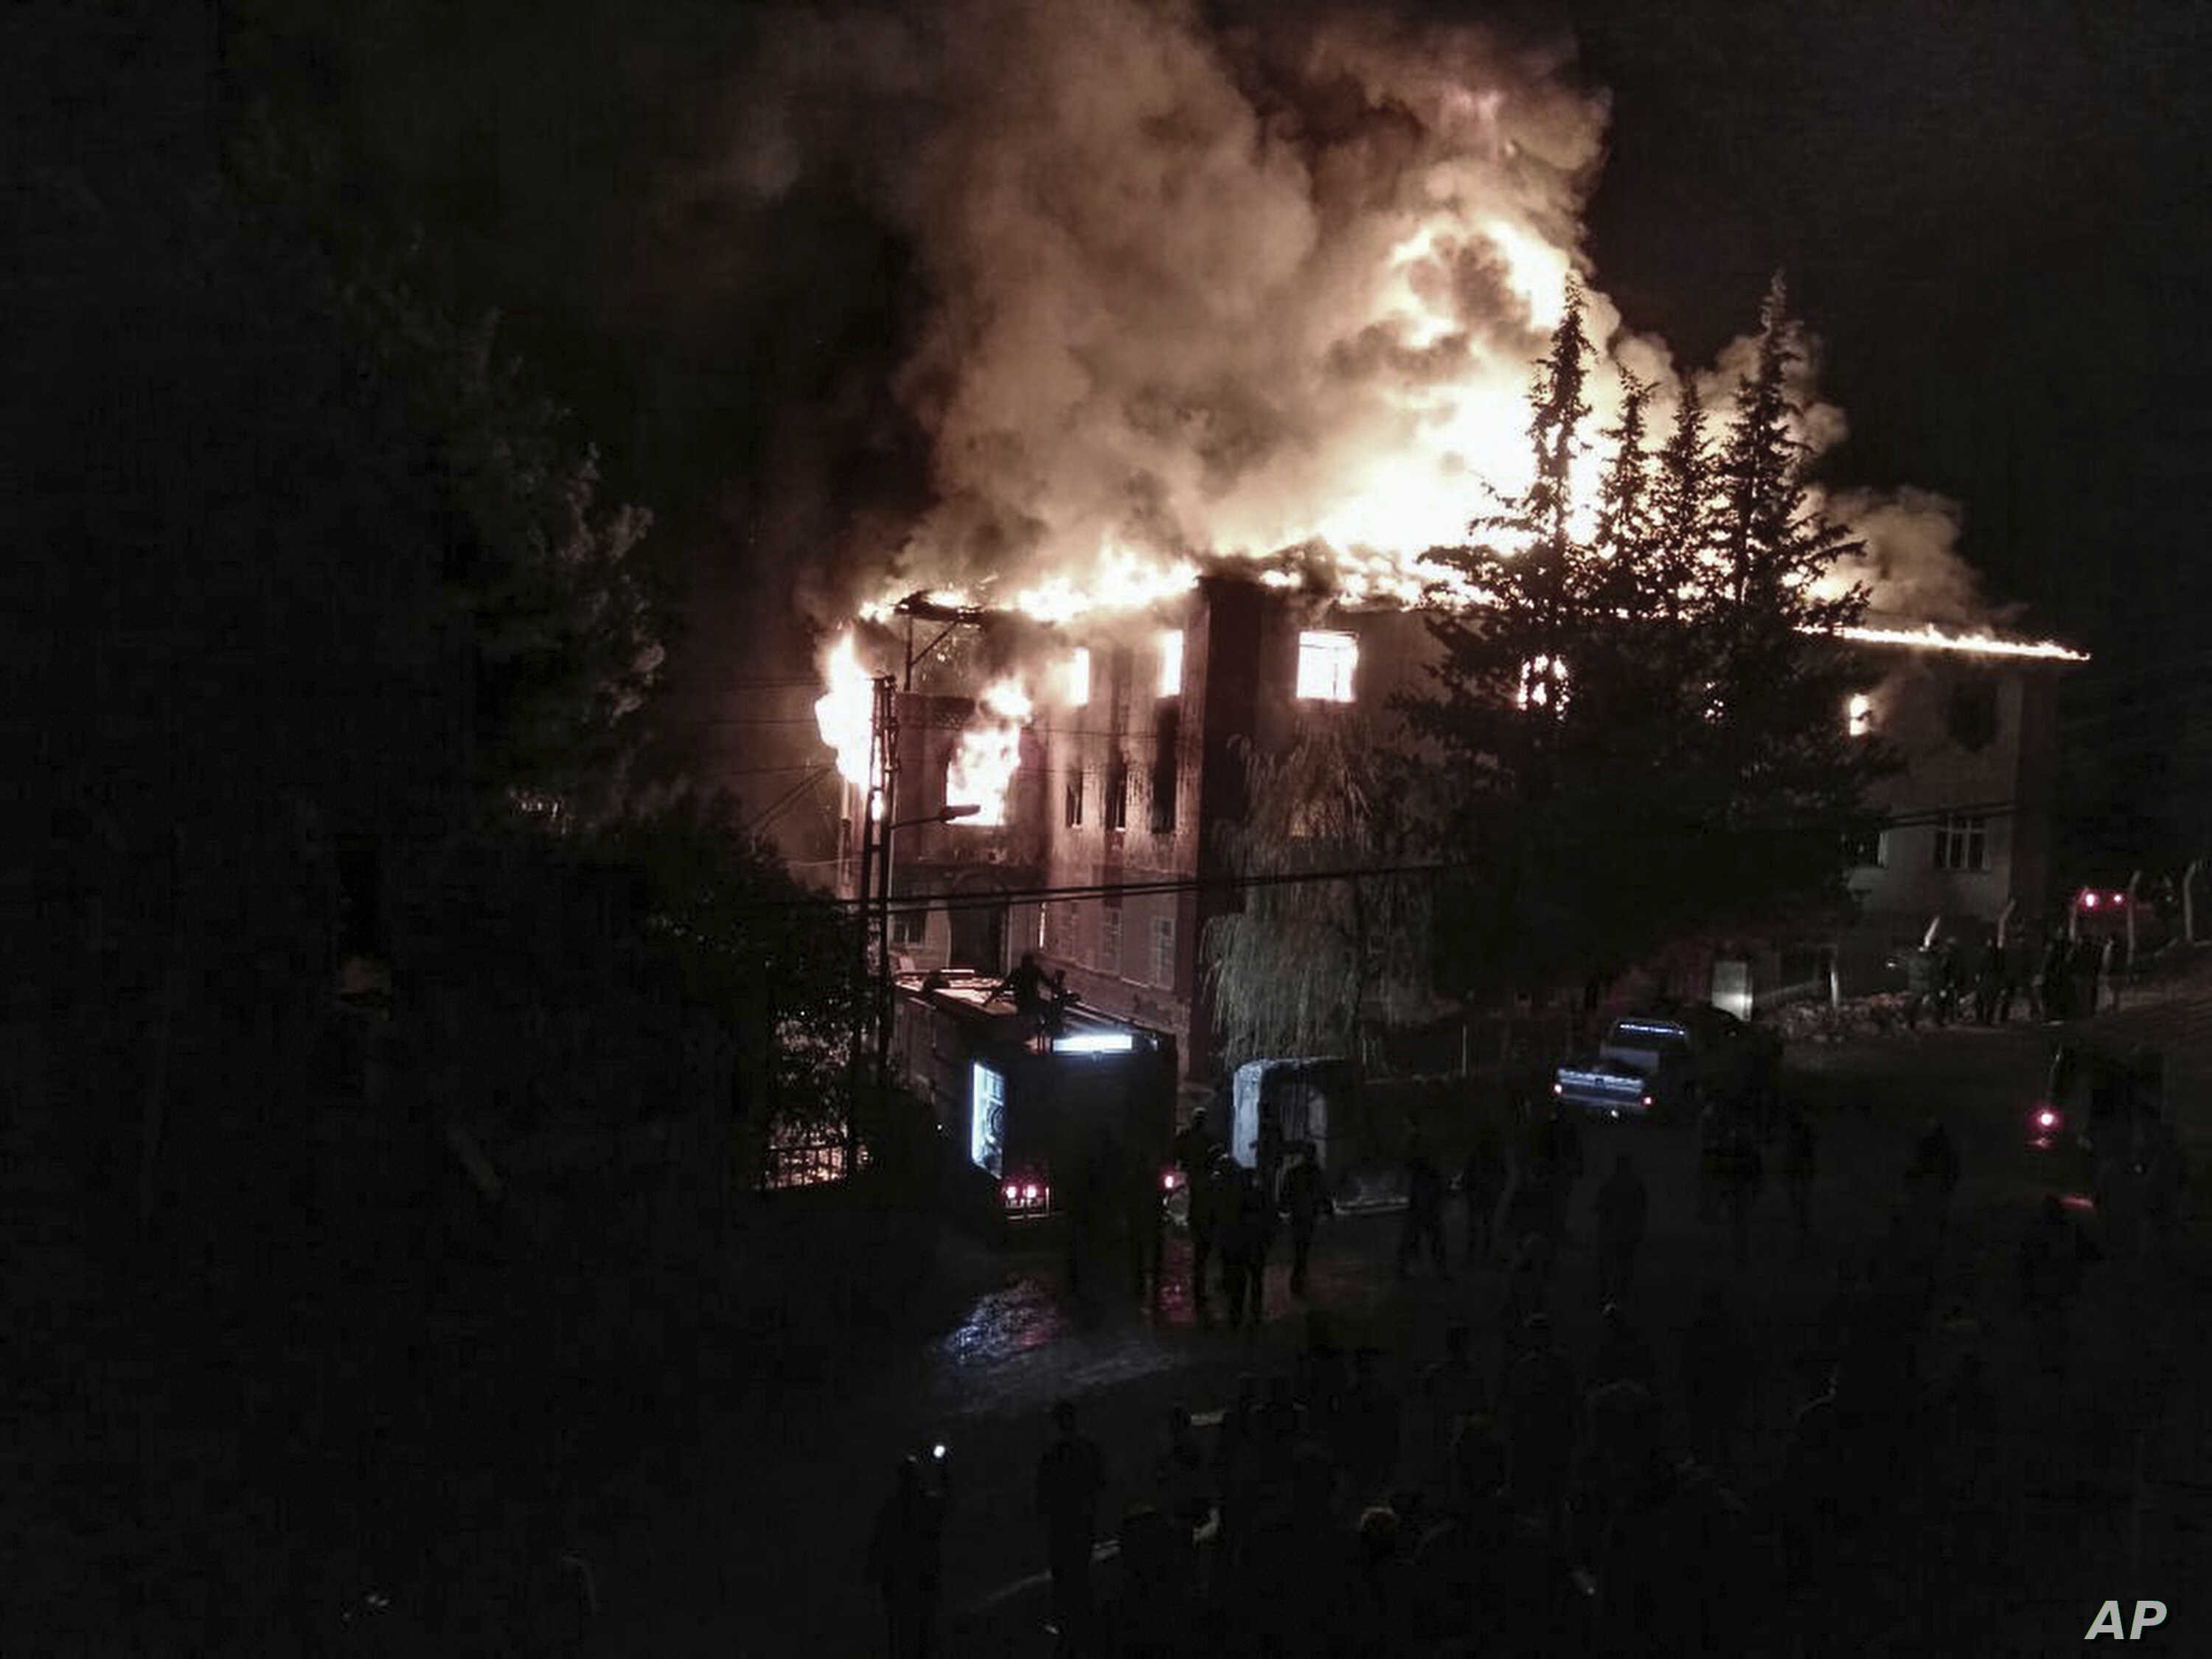 Flames rise from a fire in a school dormitory, in Aladag, Adana, in southern Turkey, Nov. 29, 2016.